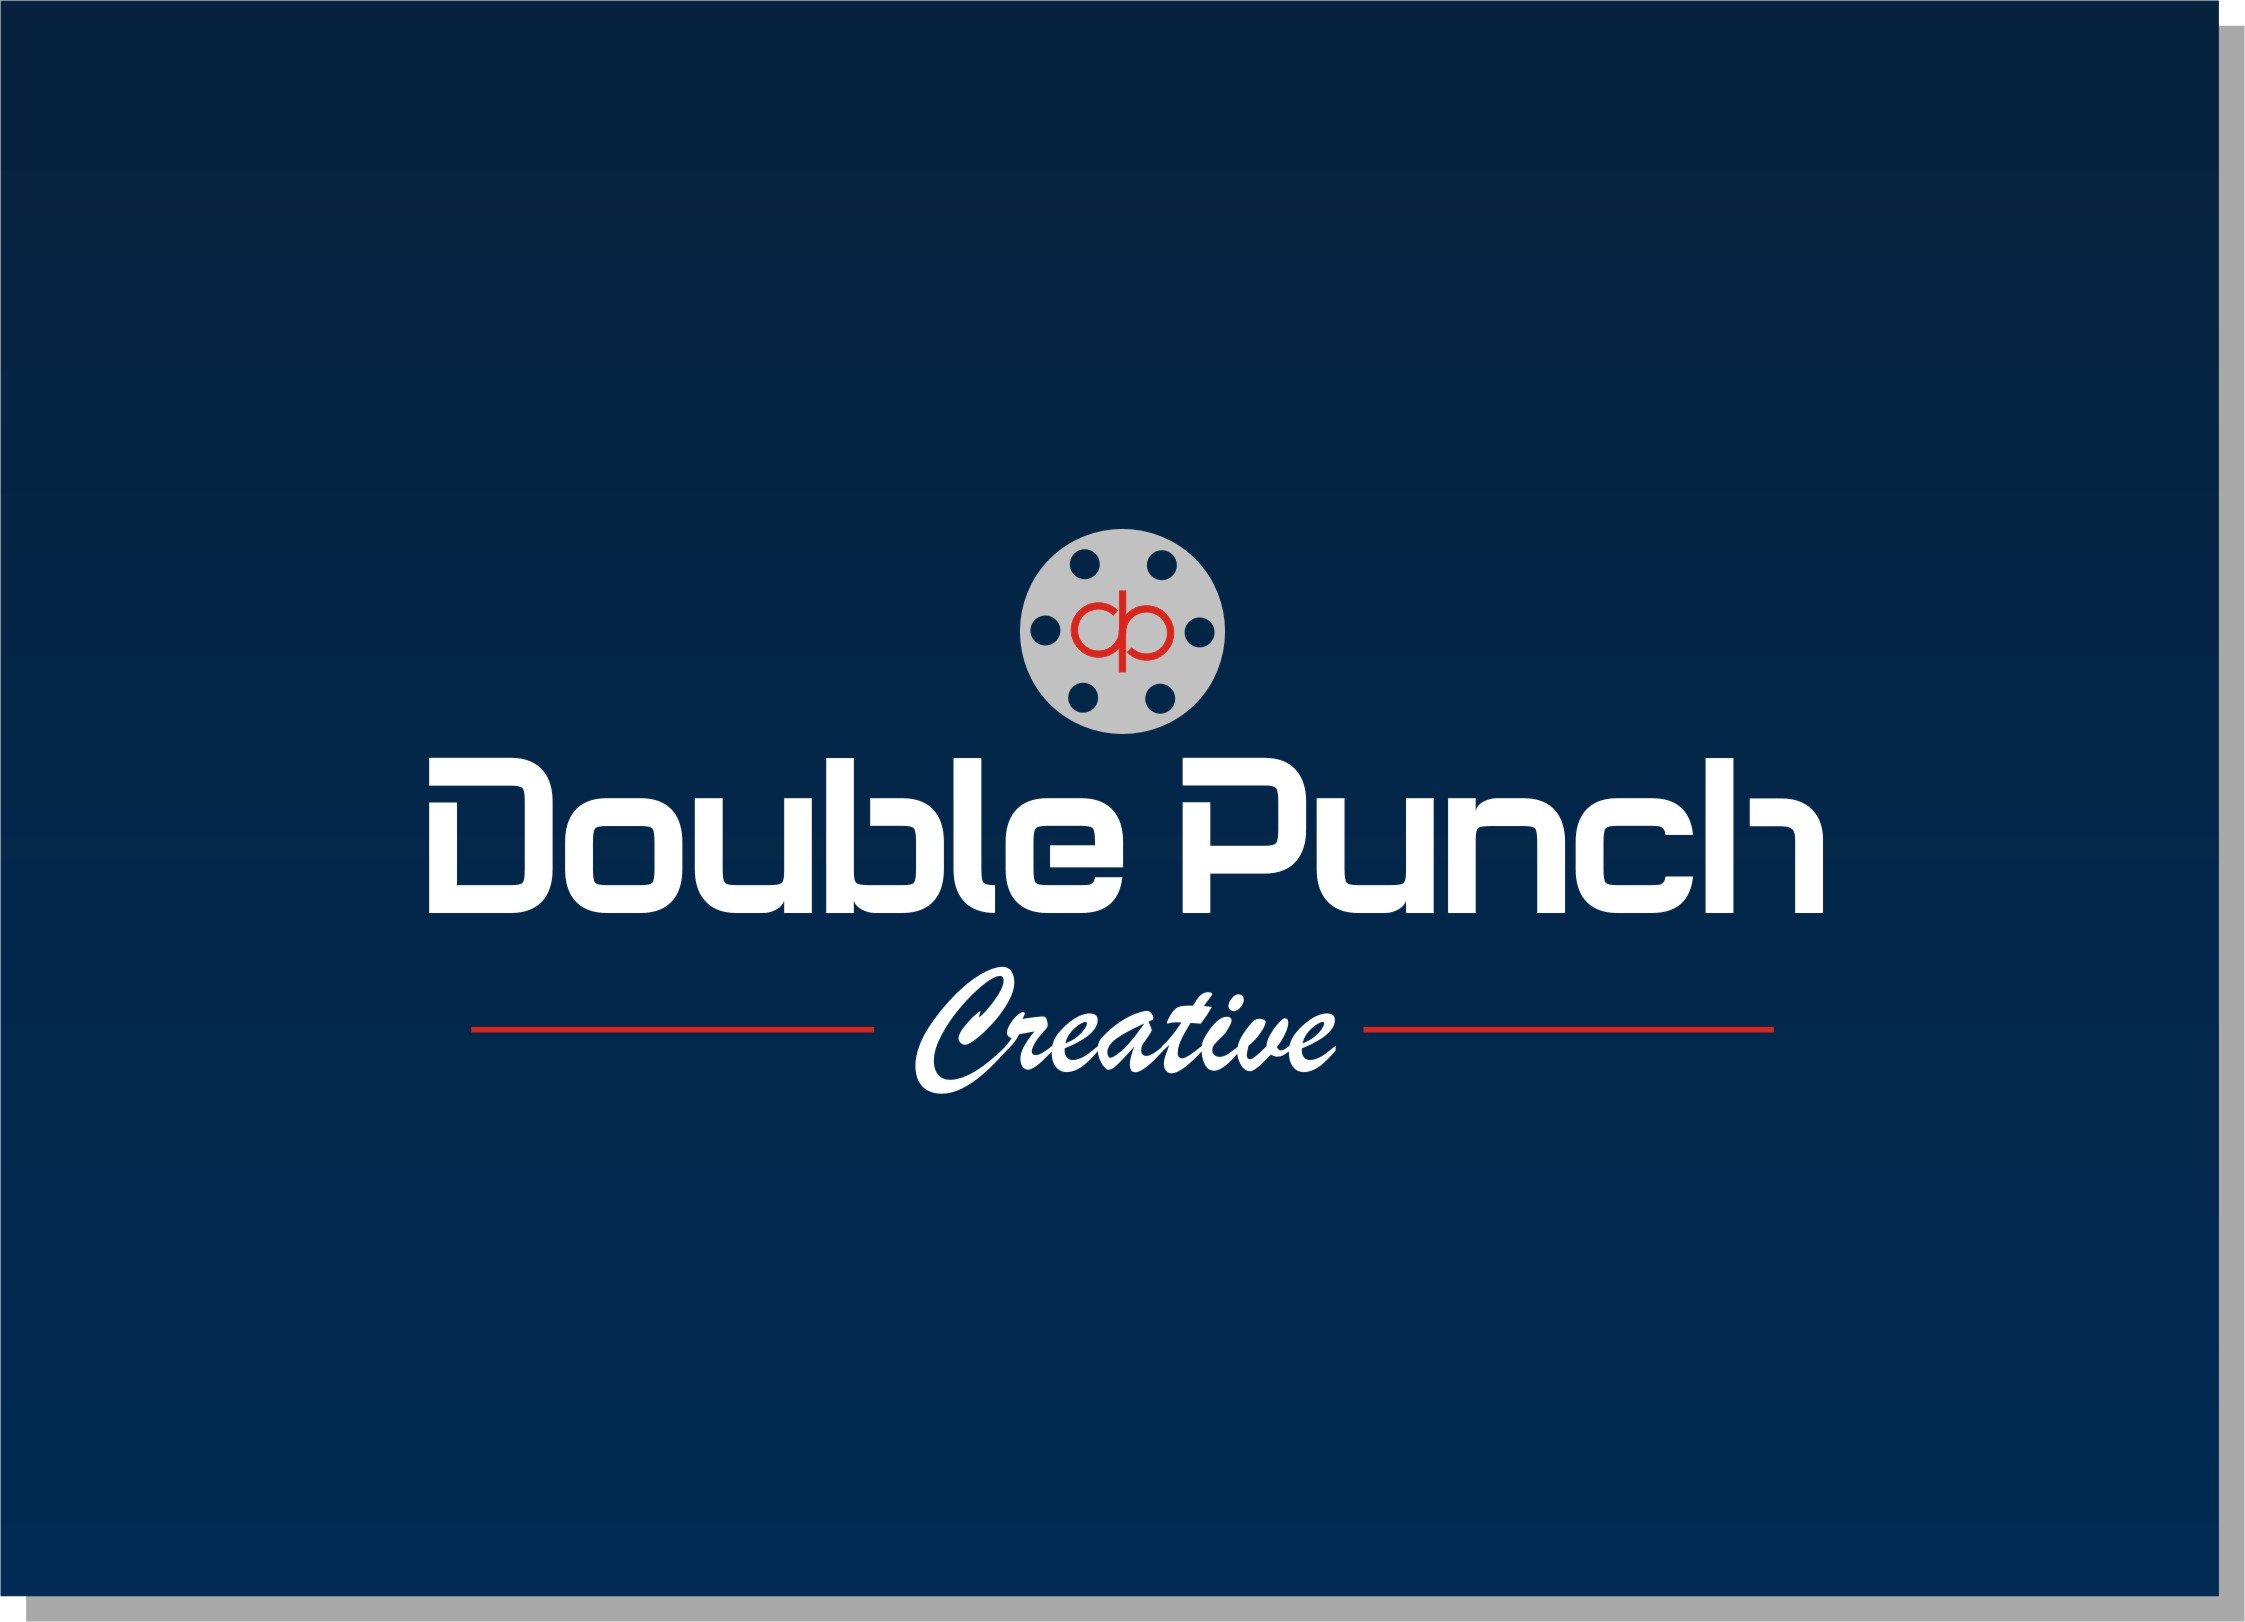 Logo Design by Crystal Desizns - Entry No. 197 in the Logo Design Contest Unique Logo Design Wanted for Double Punch Creative.